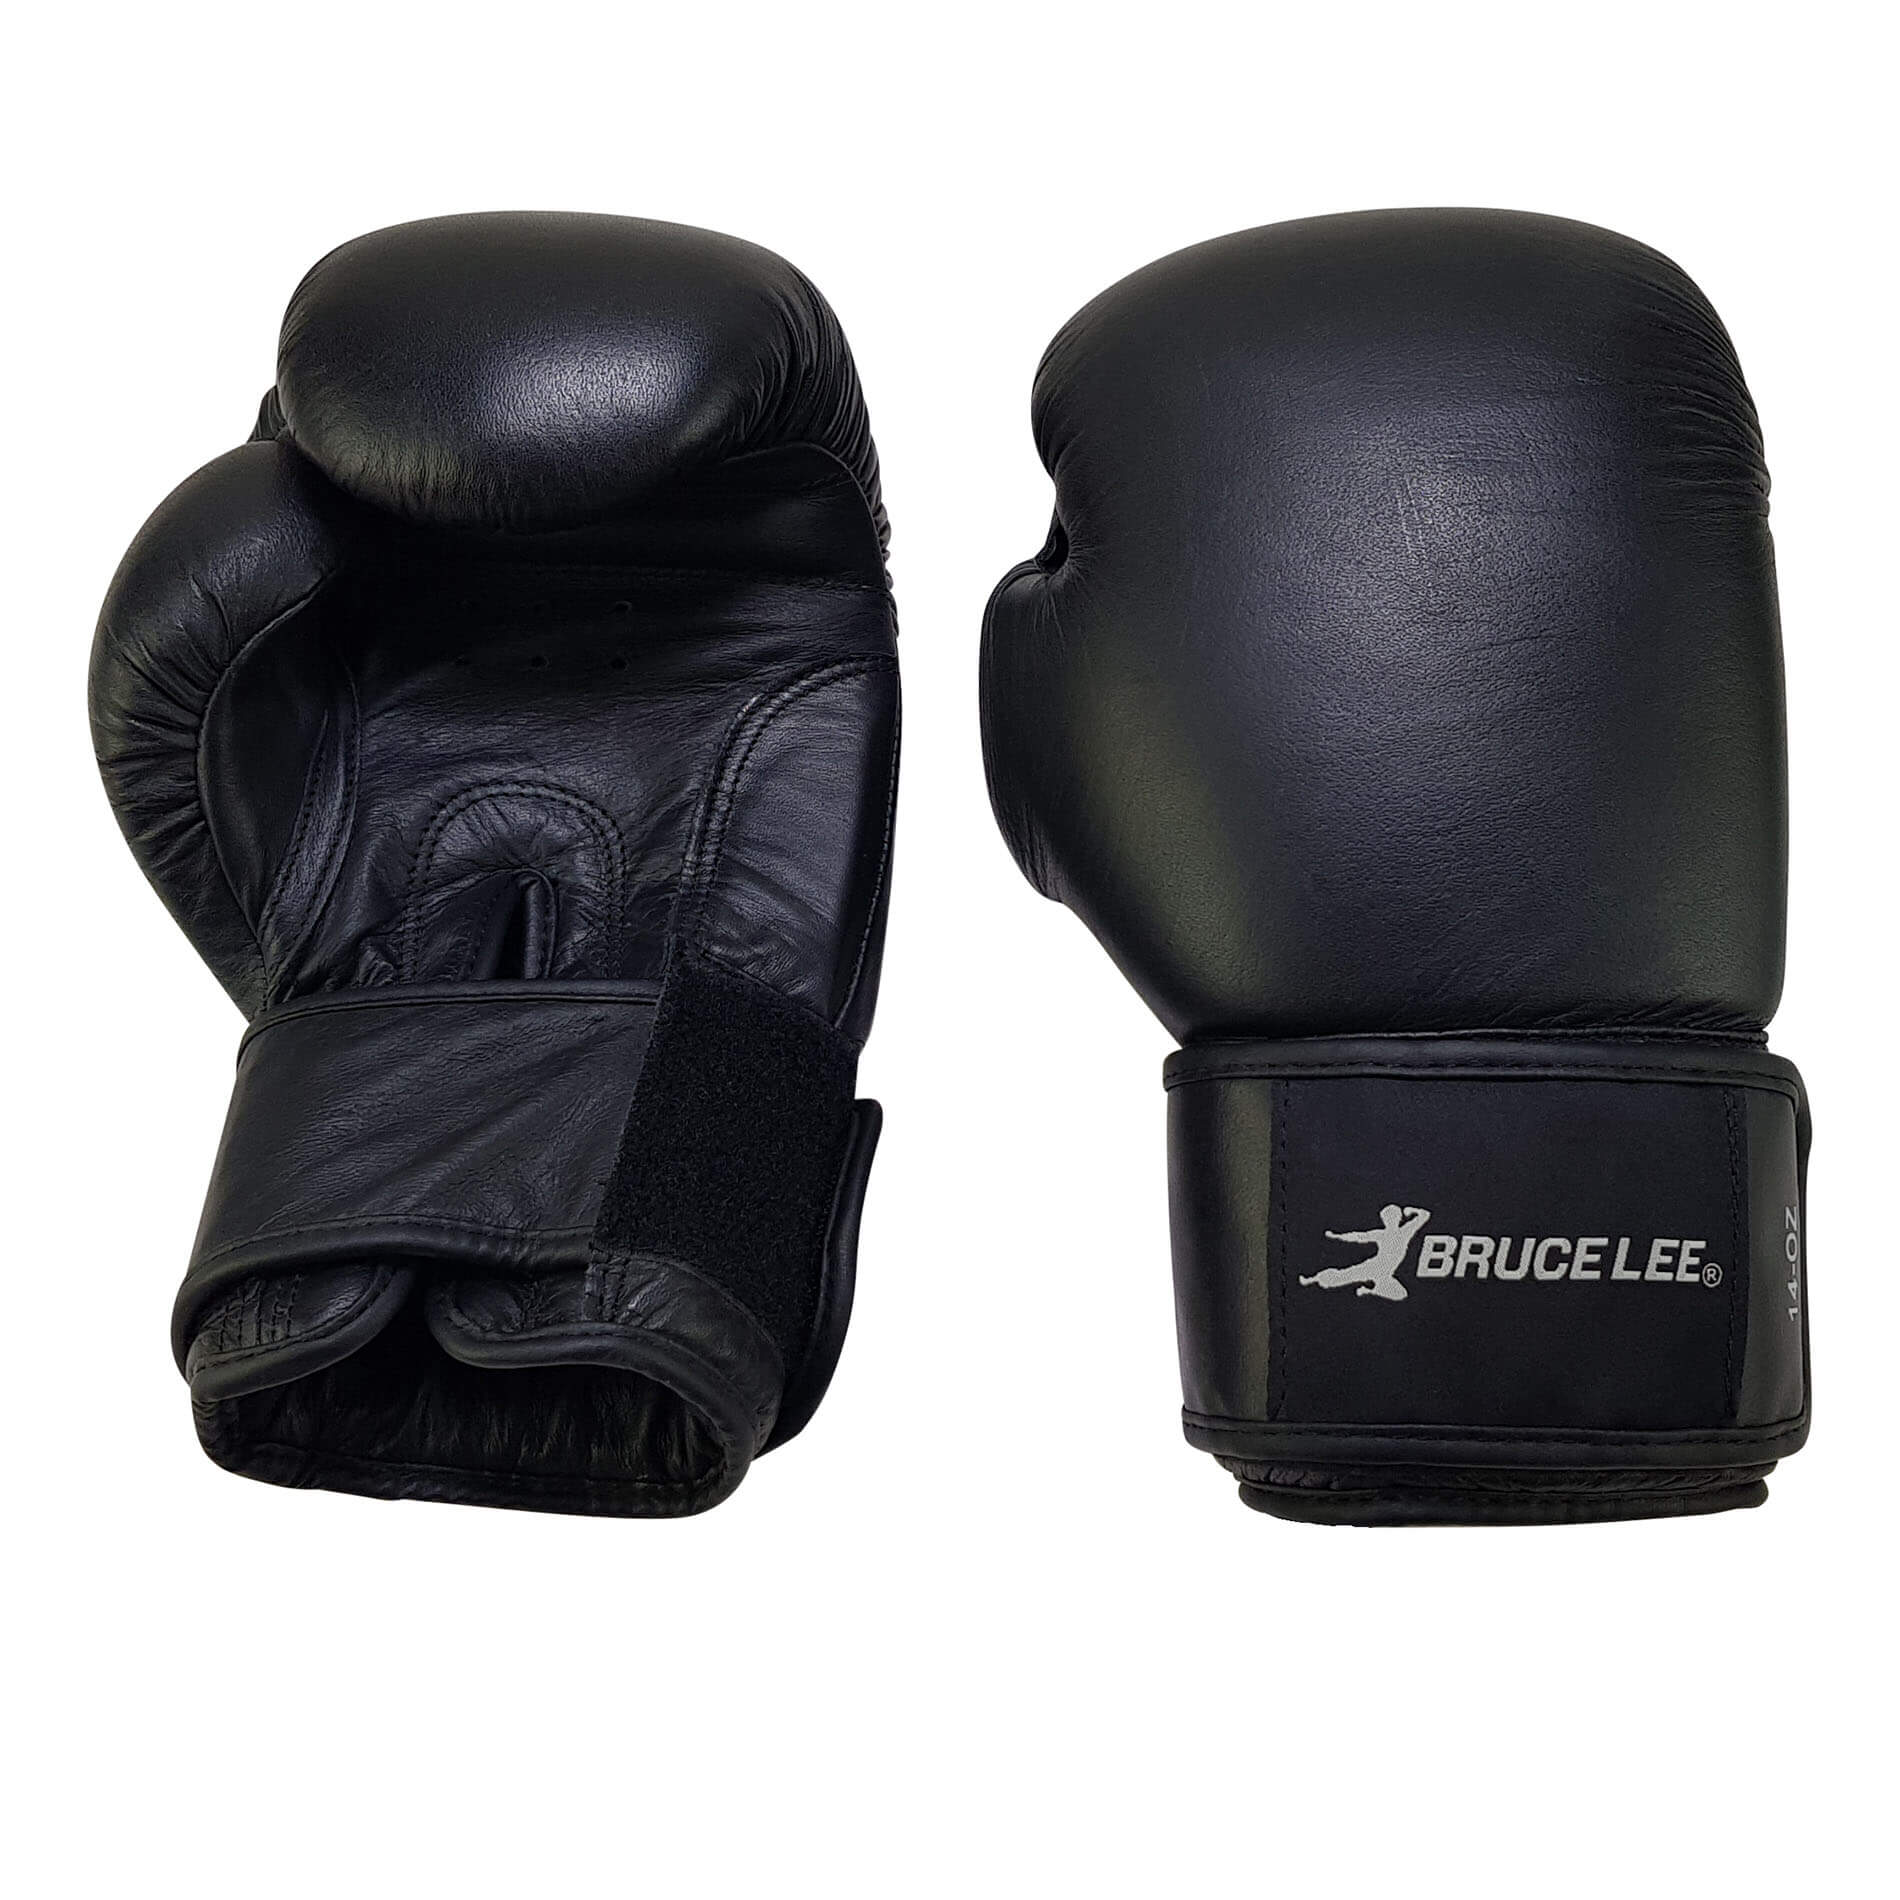 Allround Boxing Gloves Pro (10 - 16 OZ)